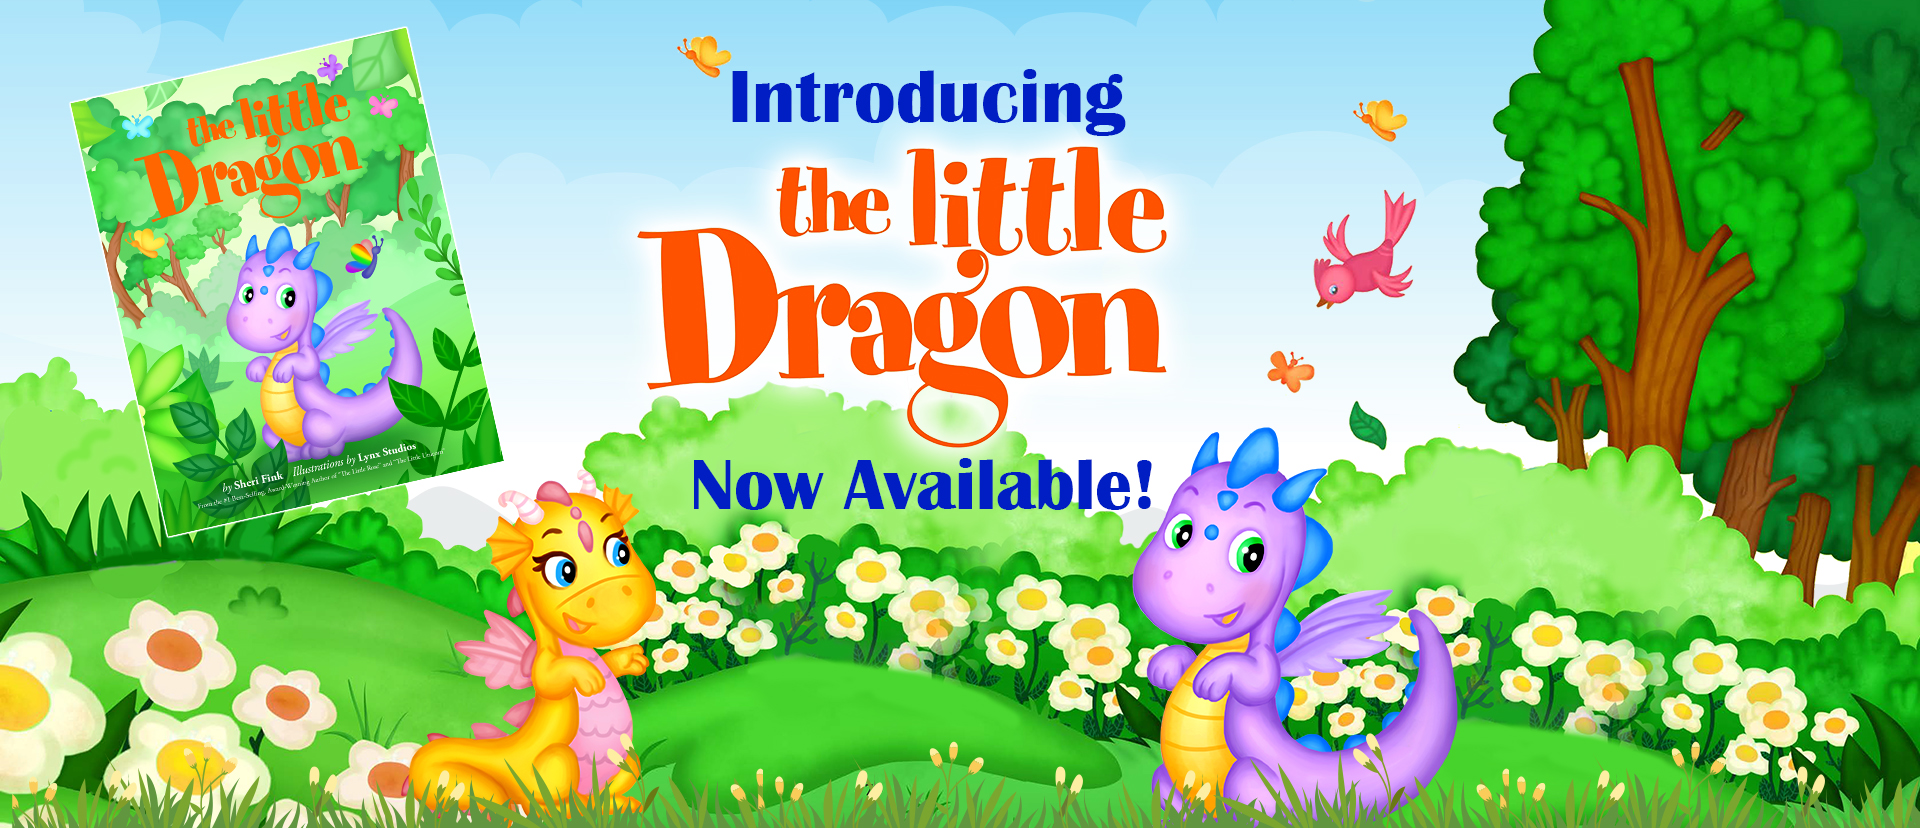 The Little Dragon by Sheri Fink is now available